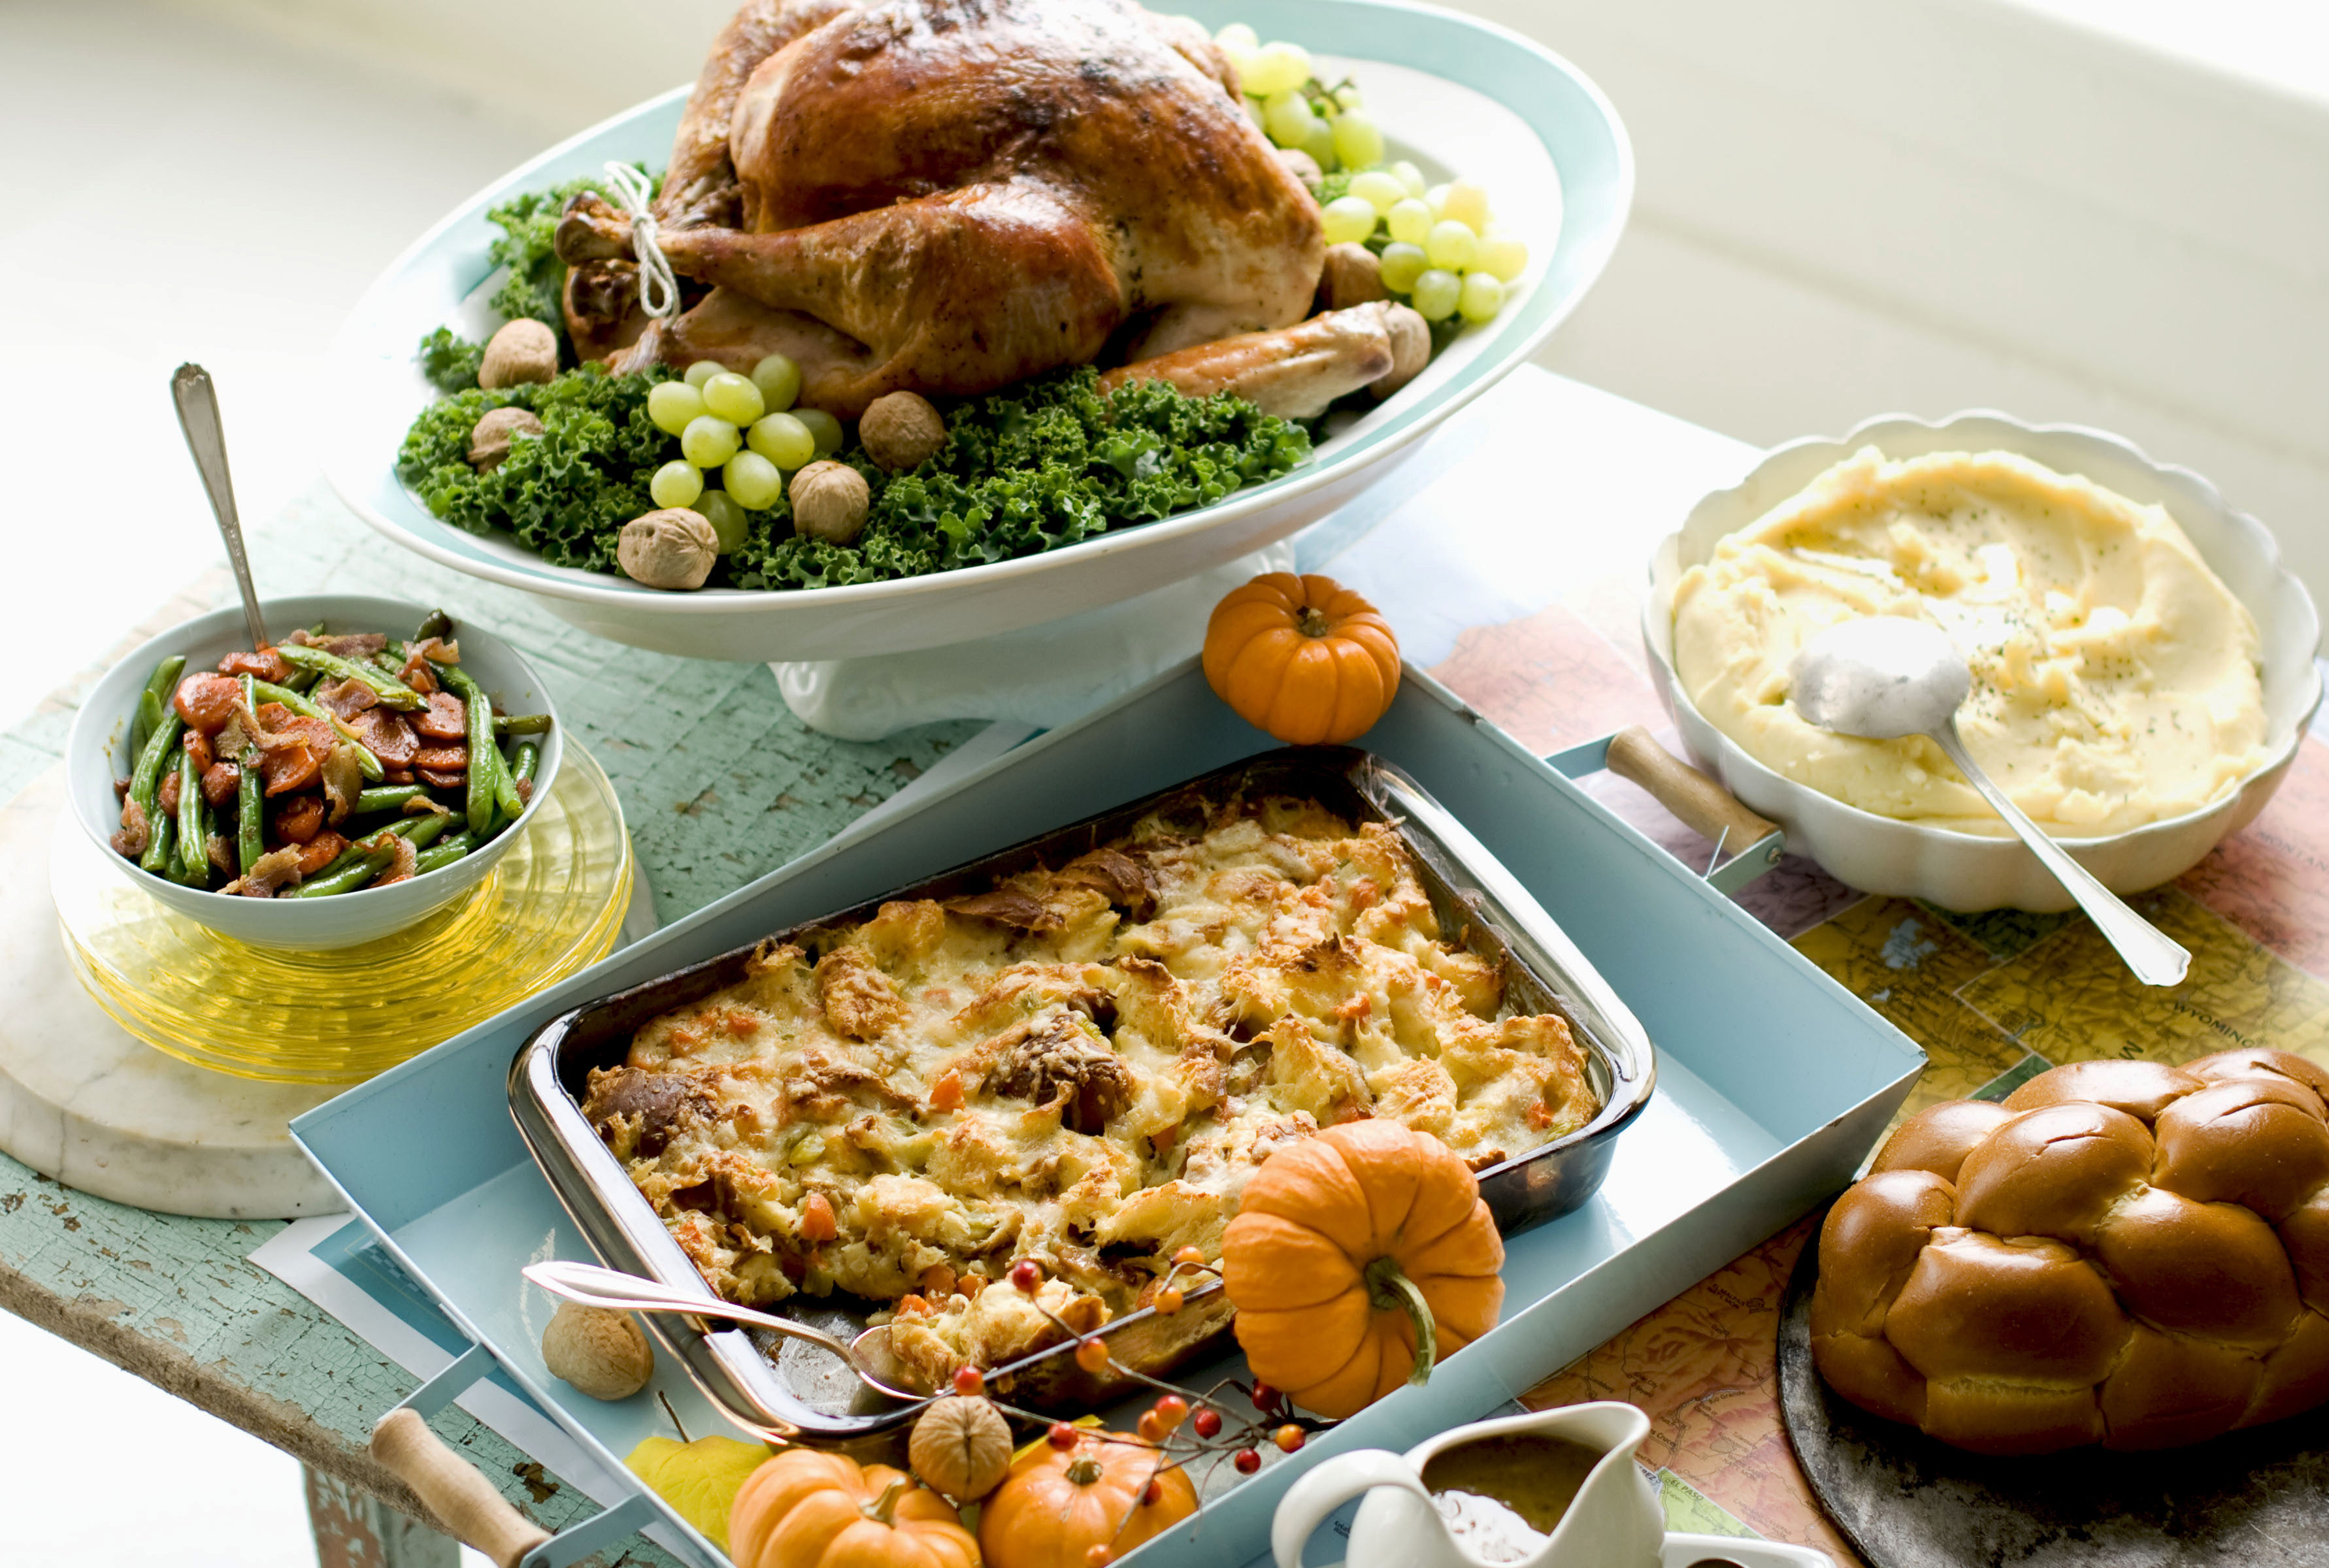 From the mouth of babes: Kids' advice for cooking the turkey